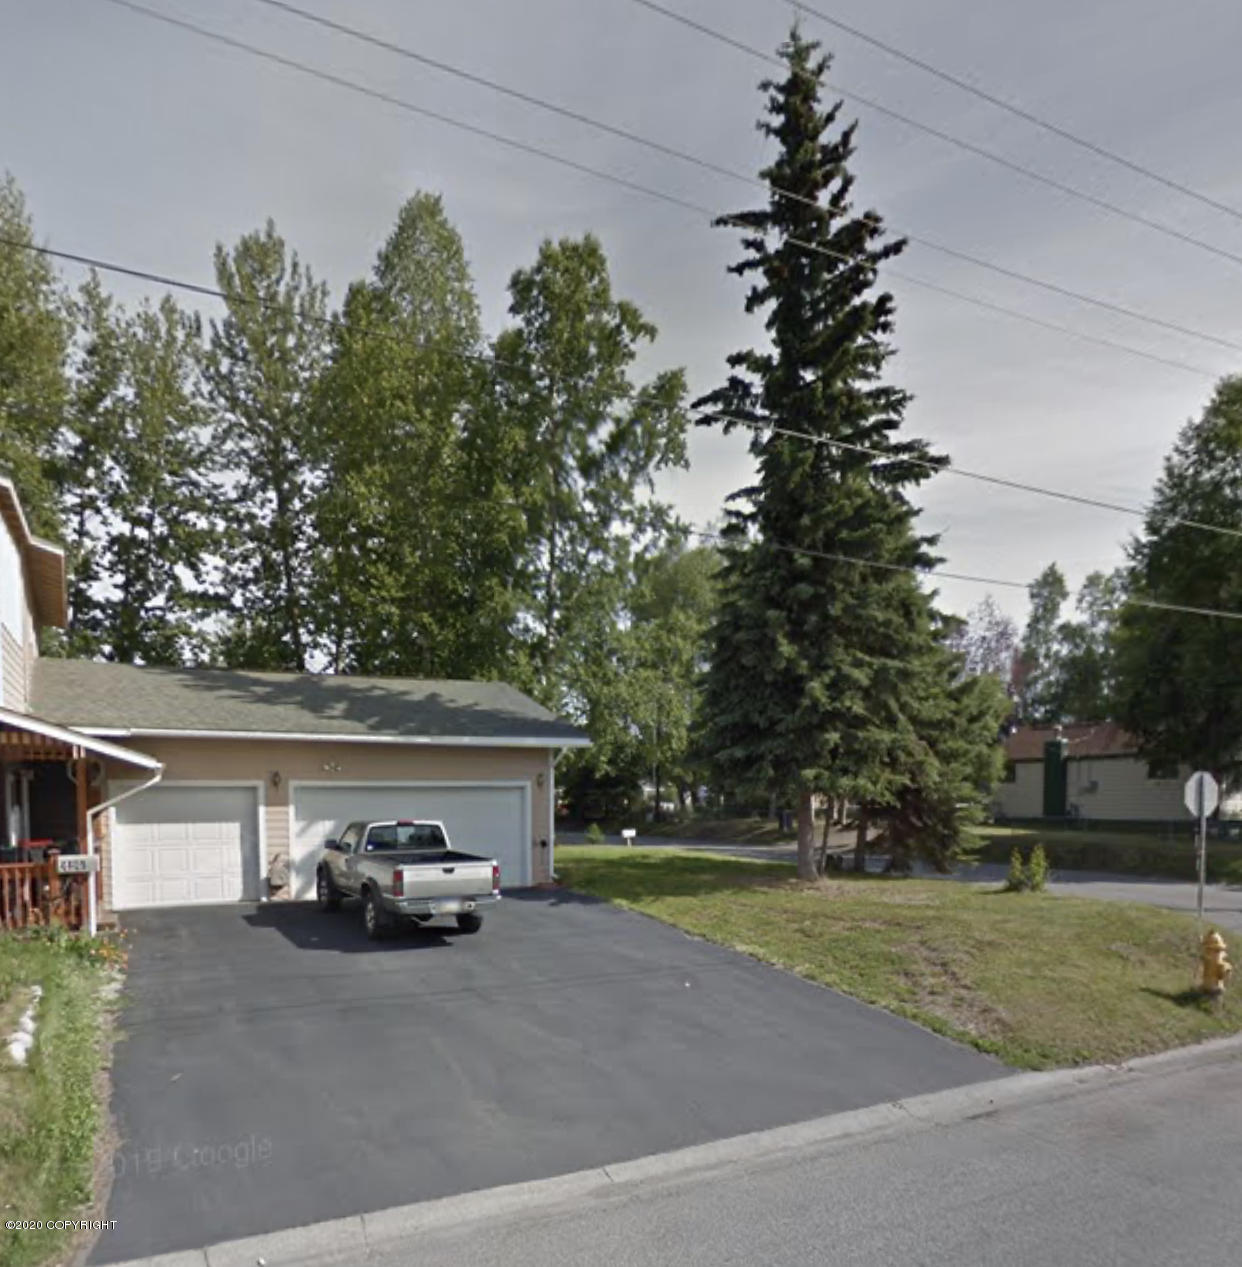 4409 4th, Anchorage